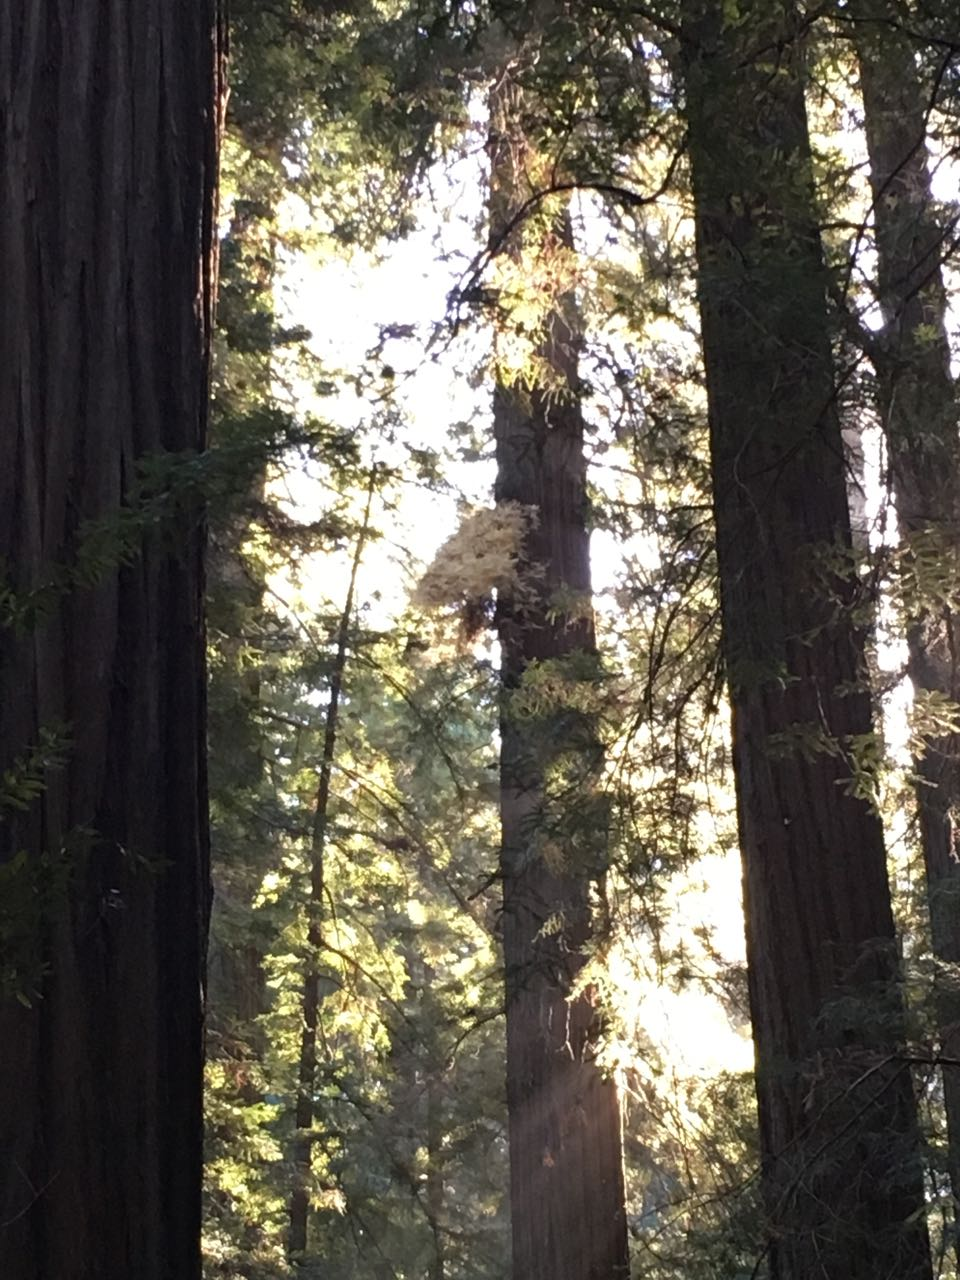 Redwoods 2017 10 08 17 Of 287